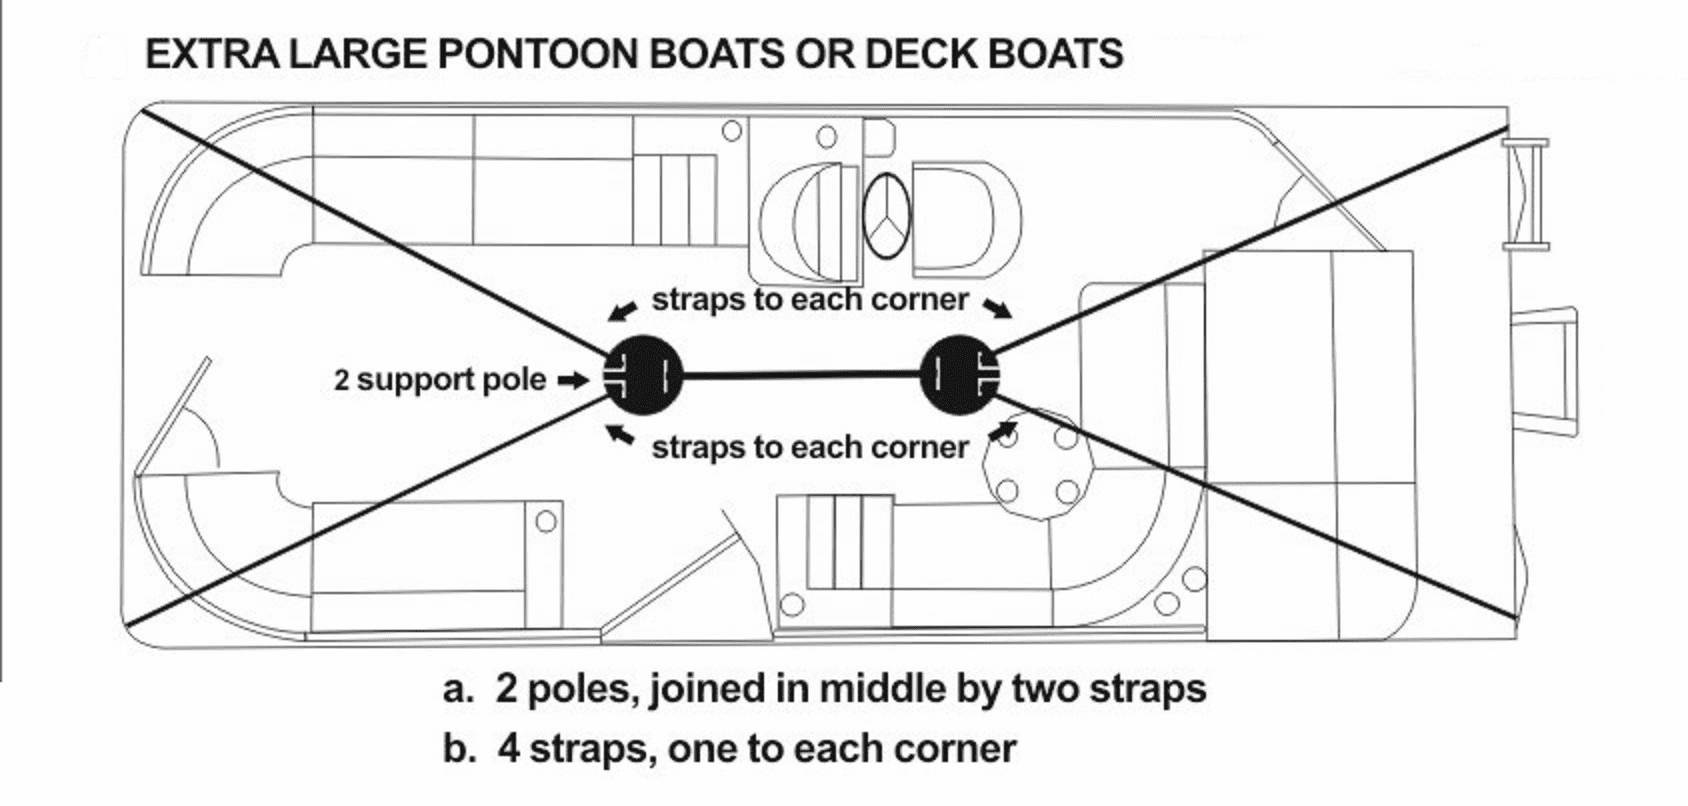 VORTEX TRIPLE PONTOON/DECK BOAT SUPPORT POLE SYSTEM<BR>**OUT OF STOCK**